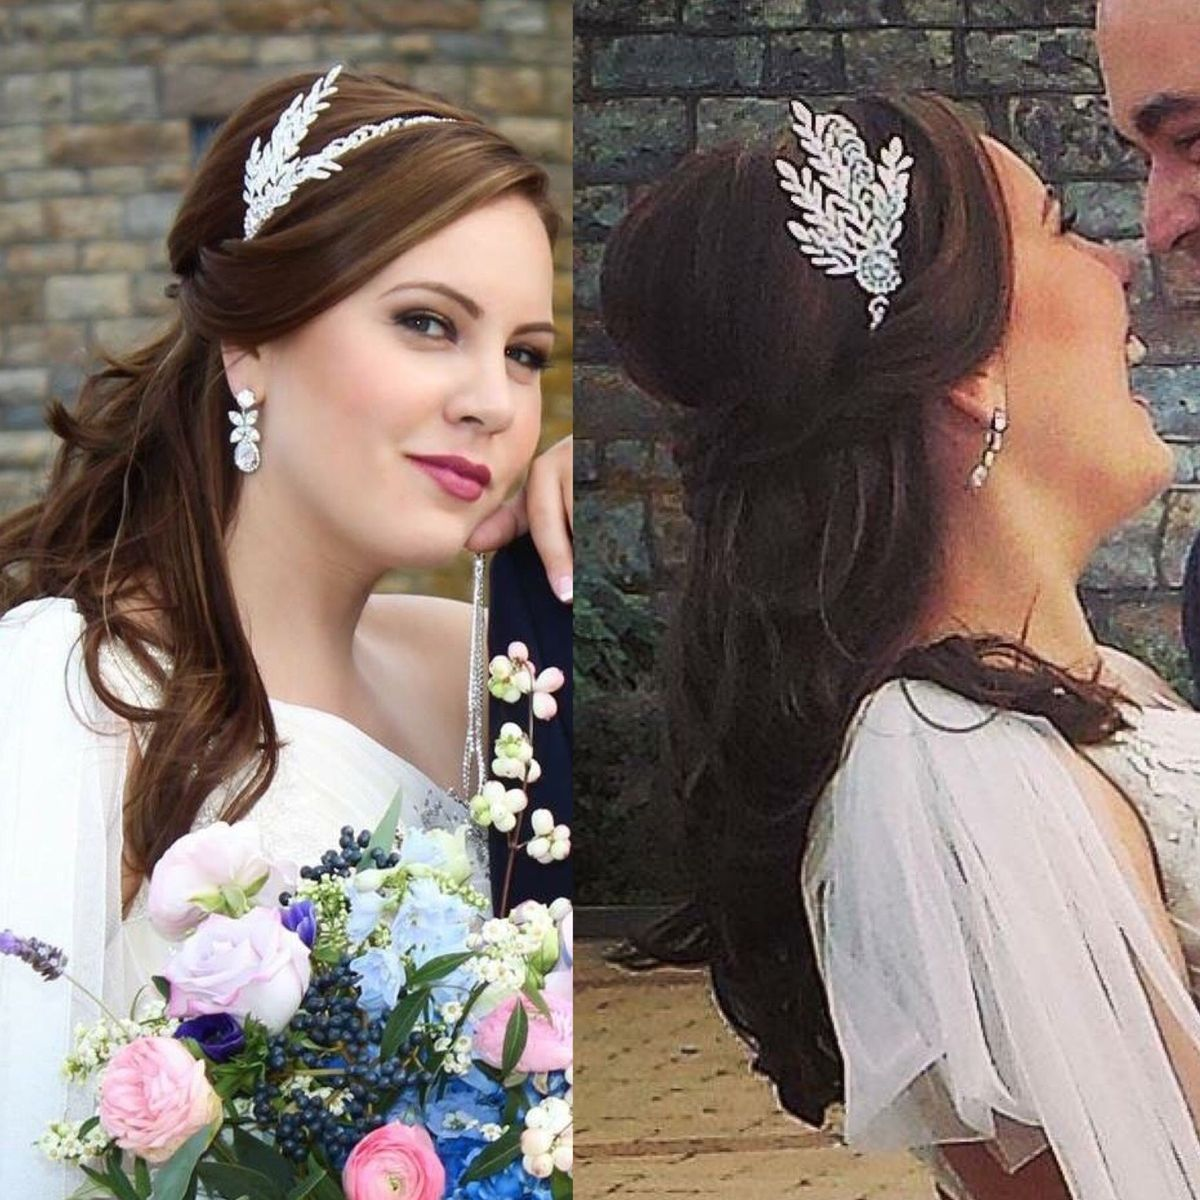 westerly wedding hair & makeup - reviews for hair & makeup